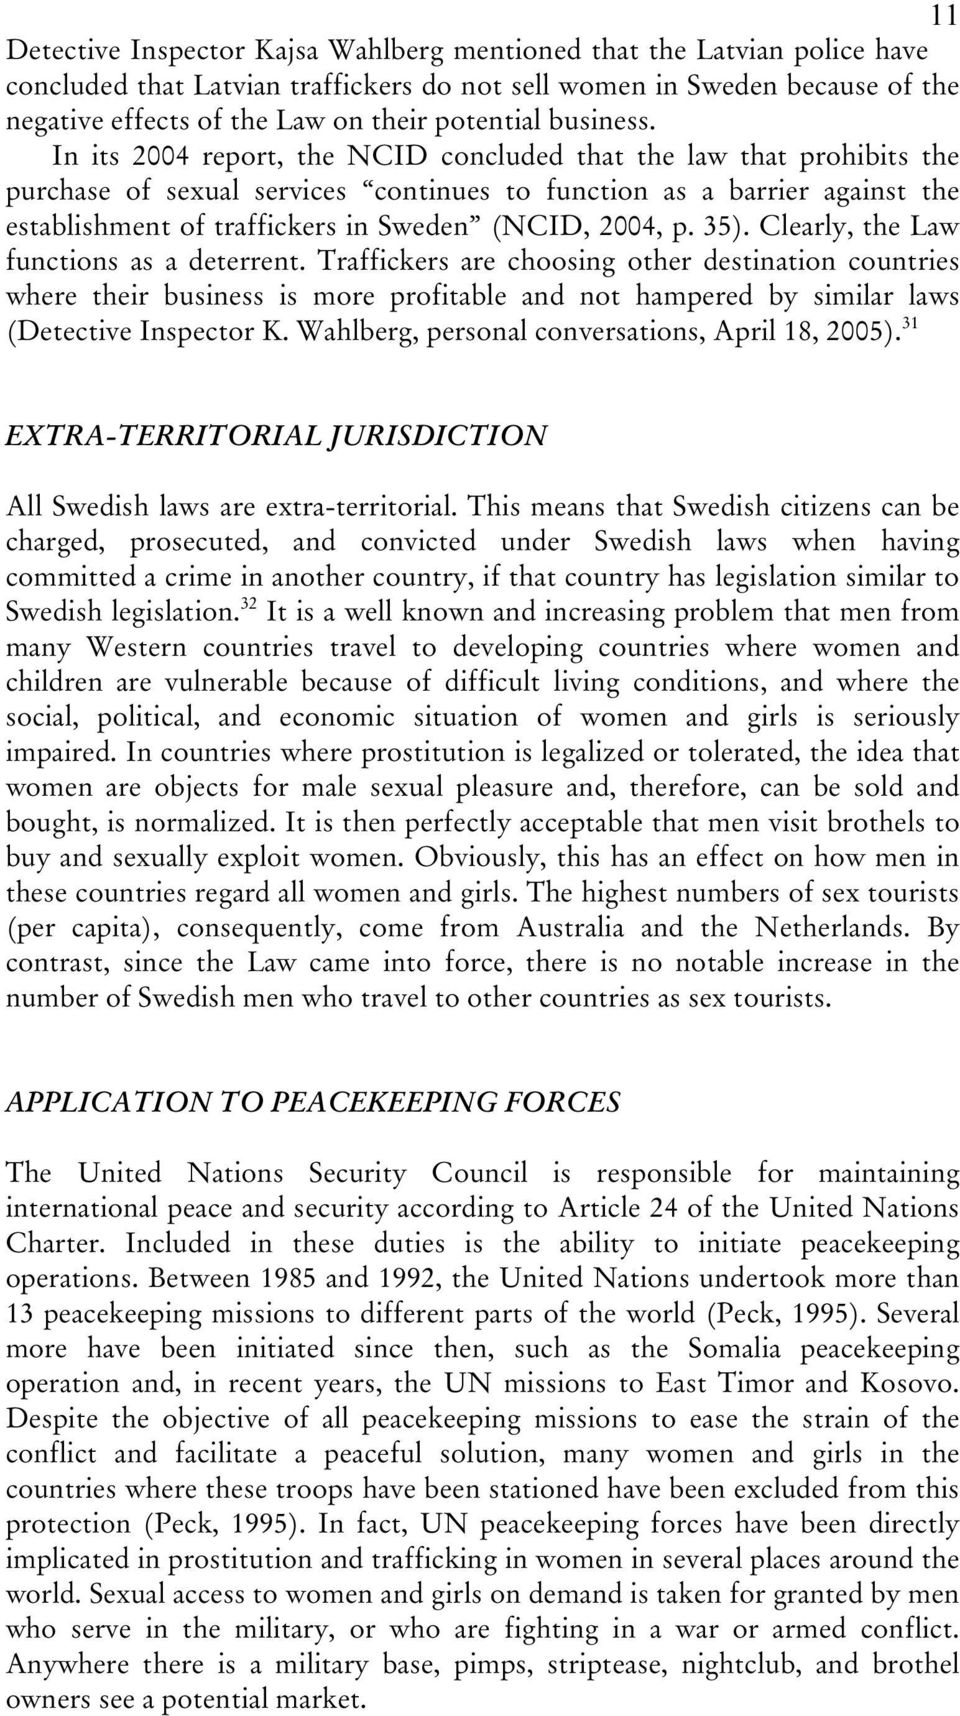 In its 2004 report, the NCID concluded that the law that prohibits the purchase of sexual services continues to function as a barrier against the establishment of traffickers in Sweden (NCID, 2004, p.